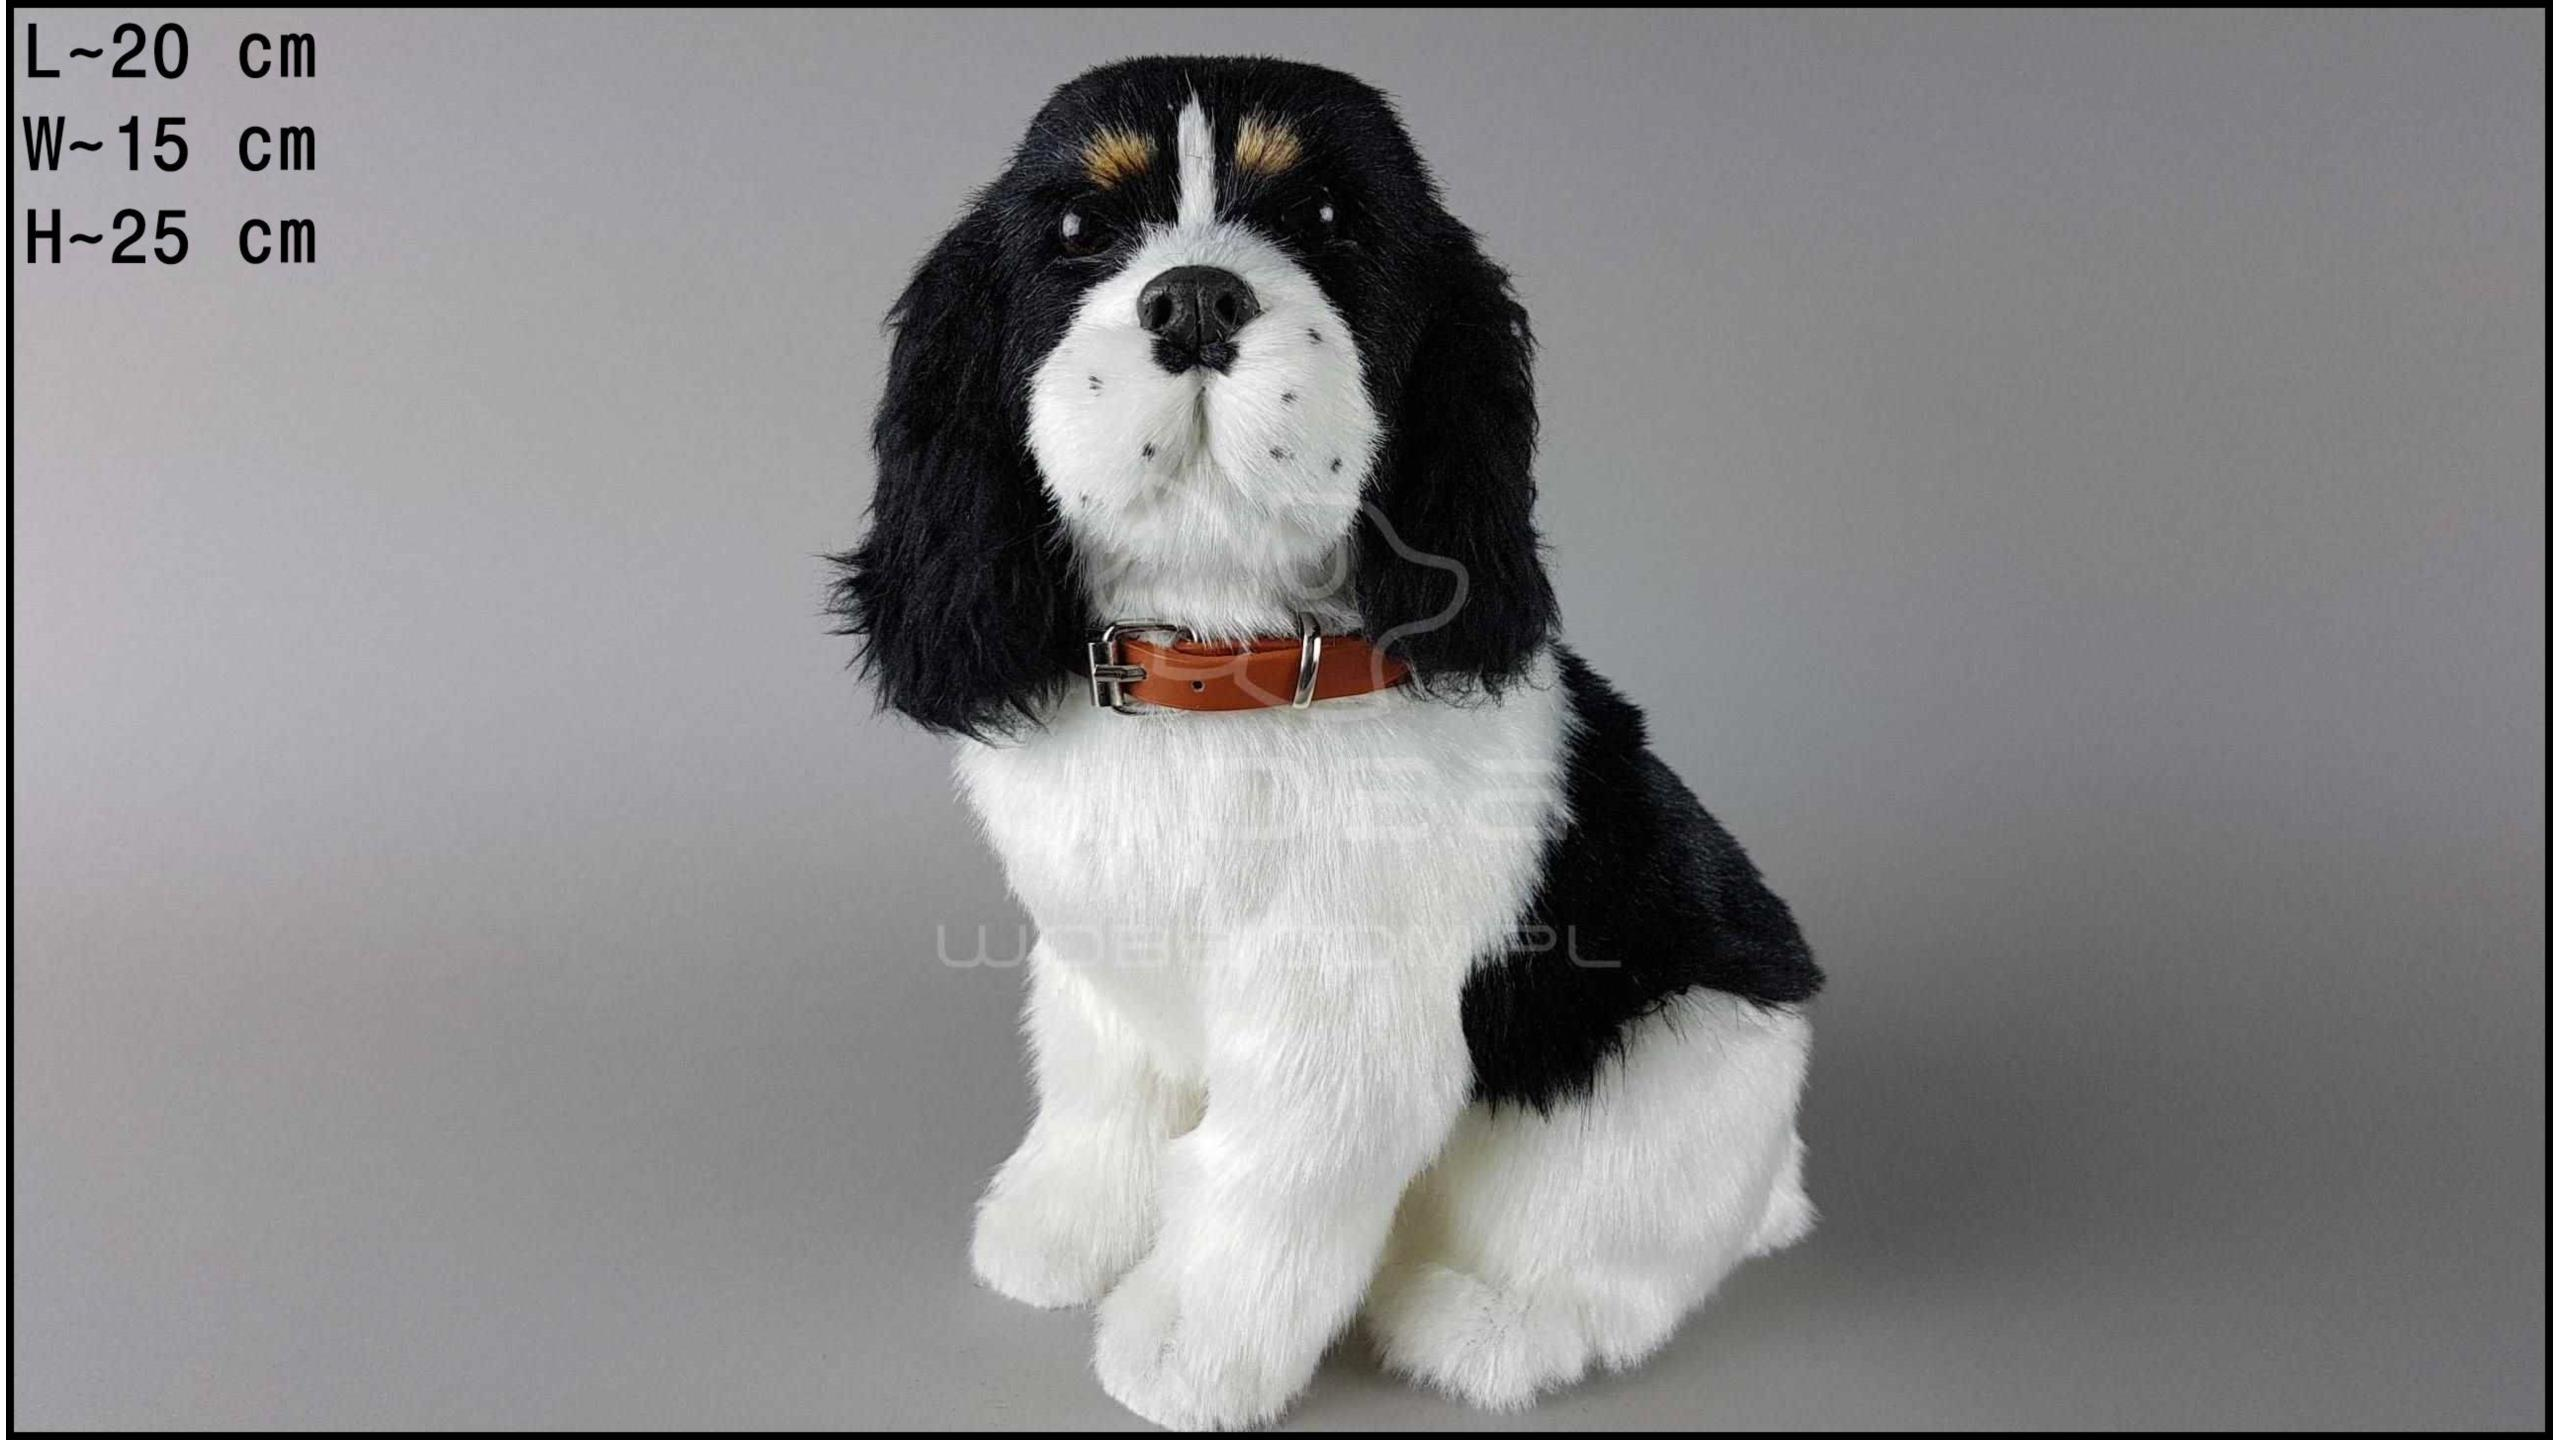 Large dog - Cocker Spaniel - Black & White